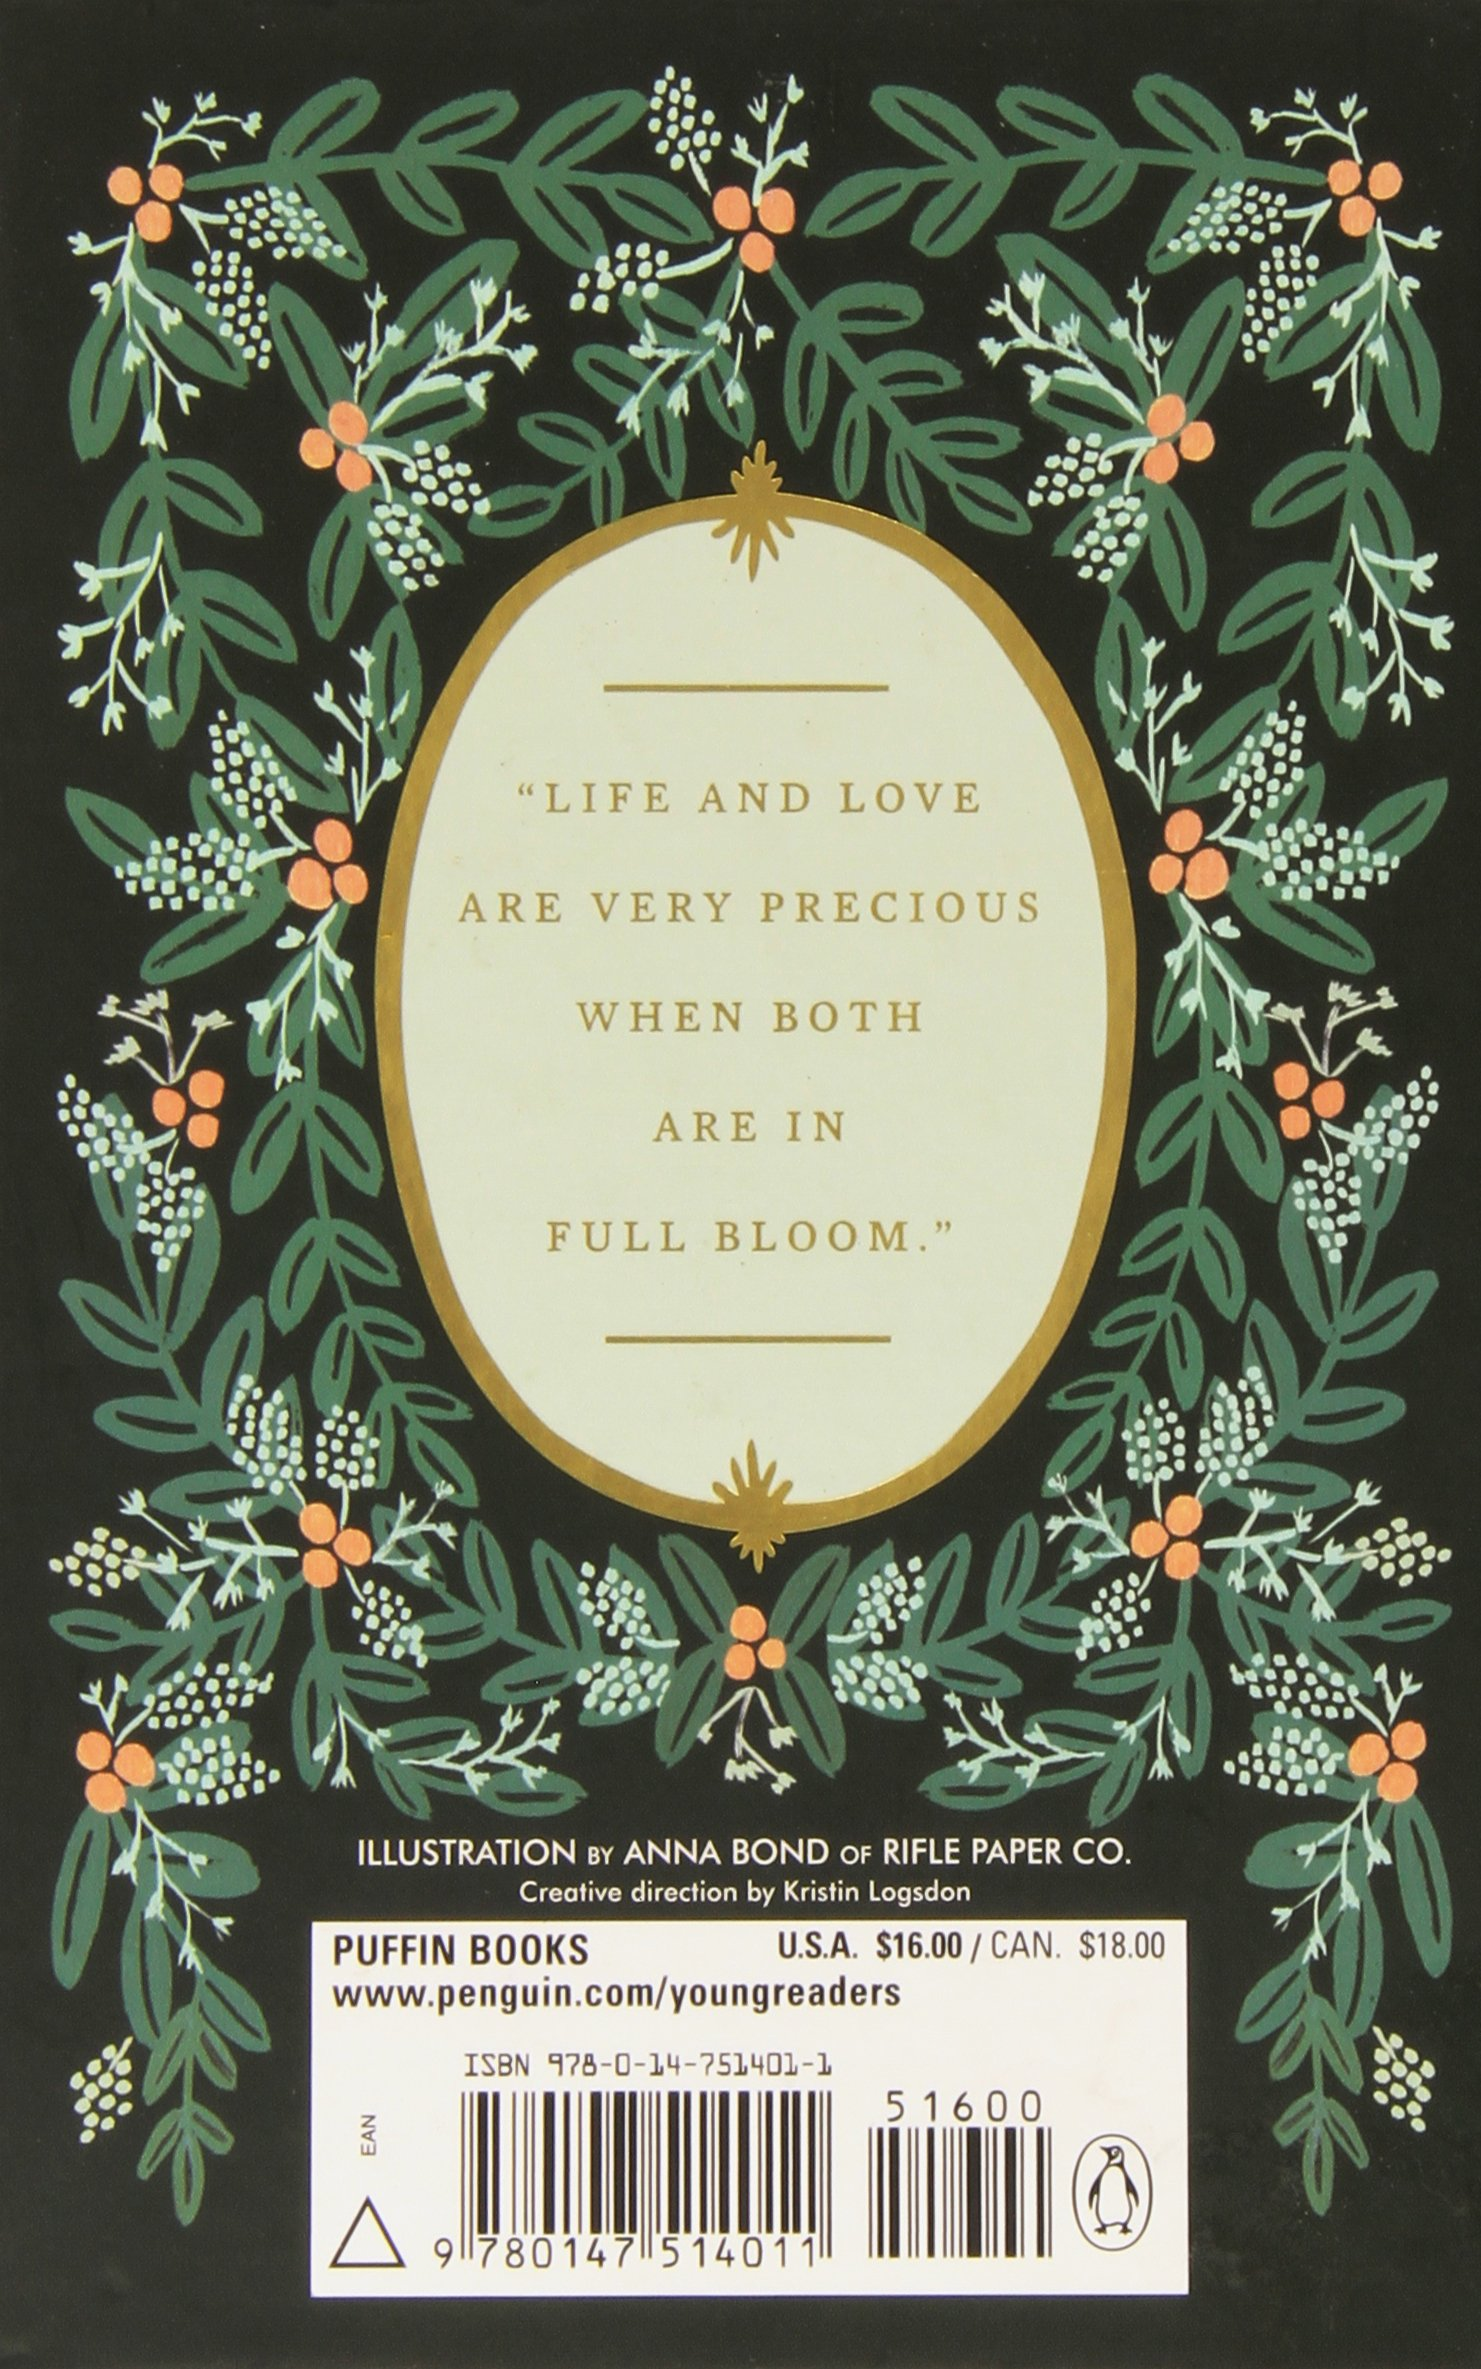 Little Women (Puffin in Bloom) by Puffin Books (Image #3)